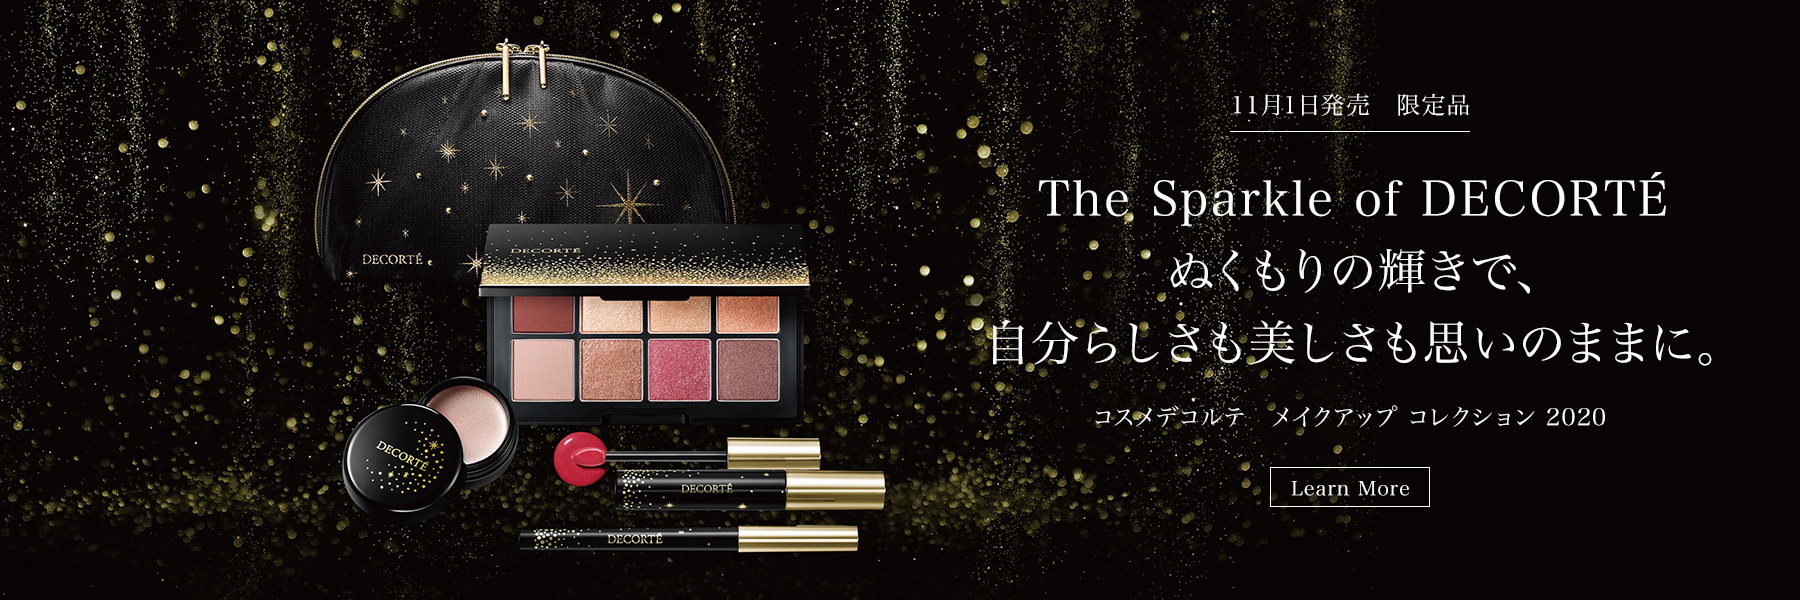 Decorté Christmas Gift Promotion in Japan 2020